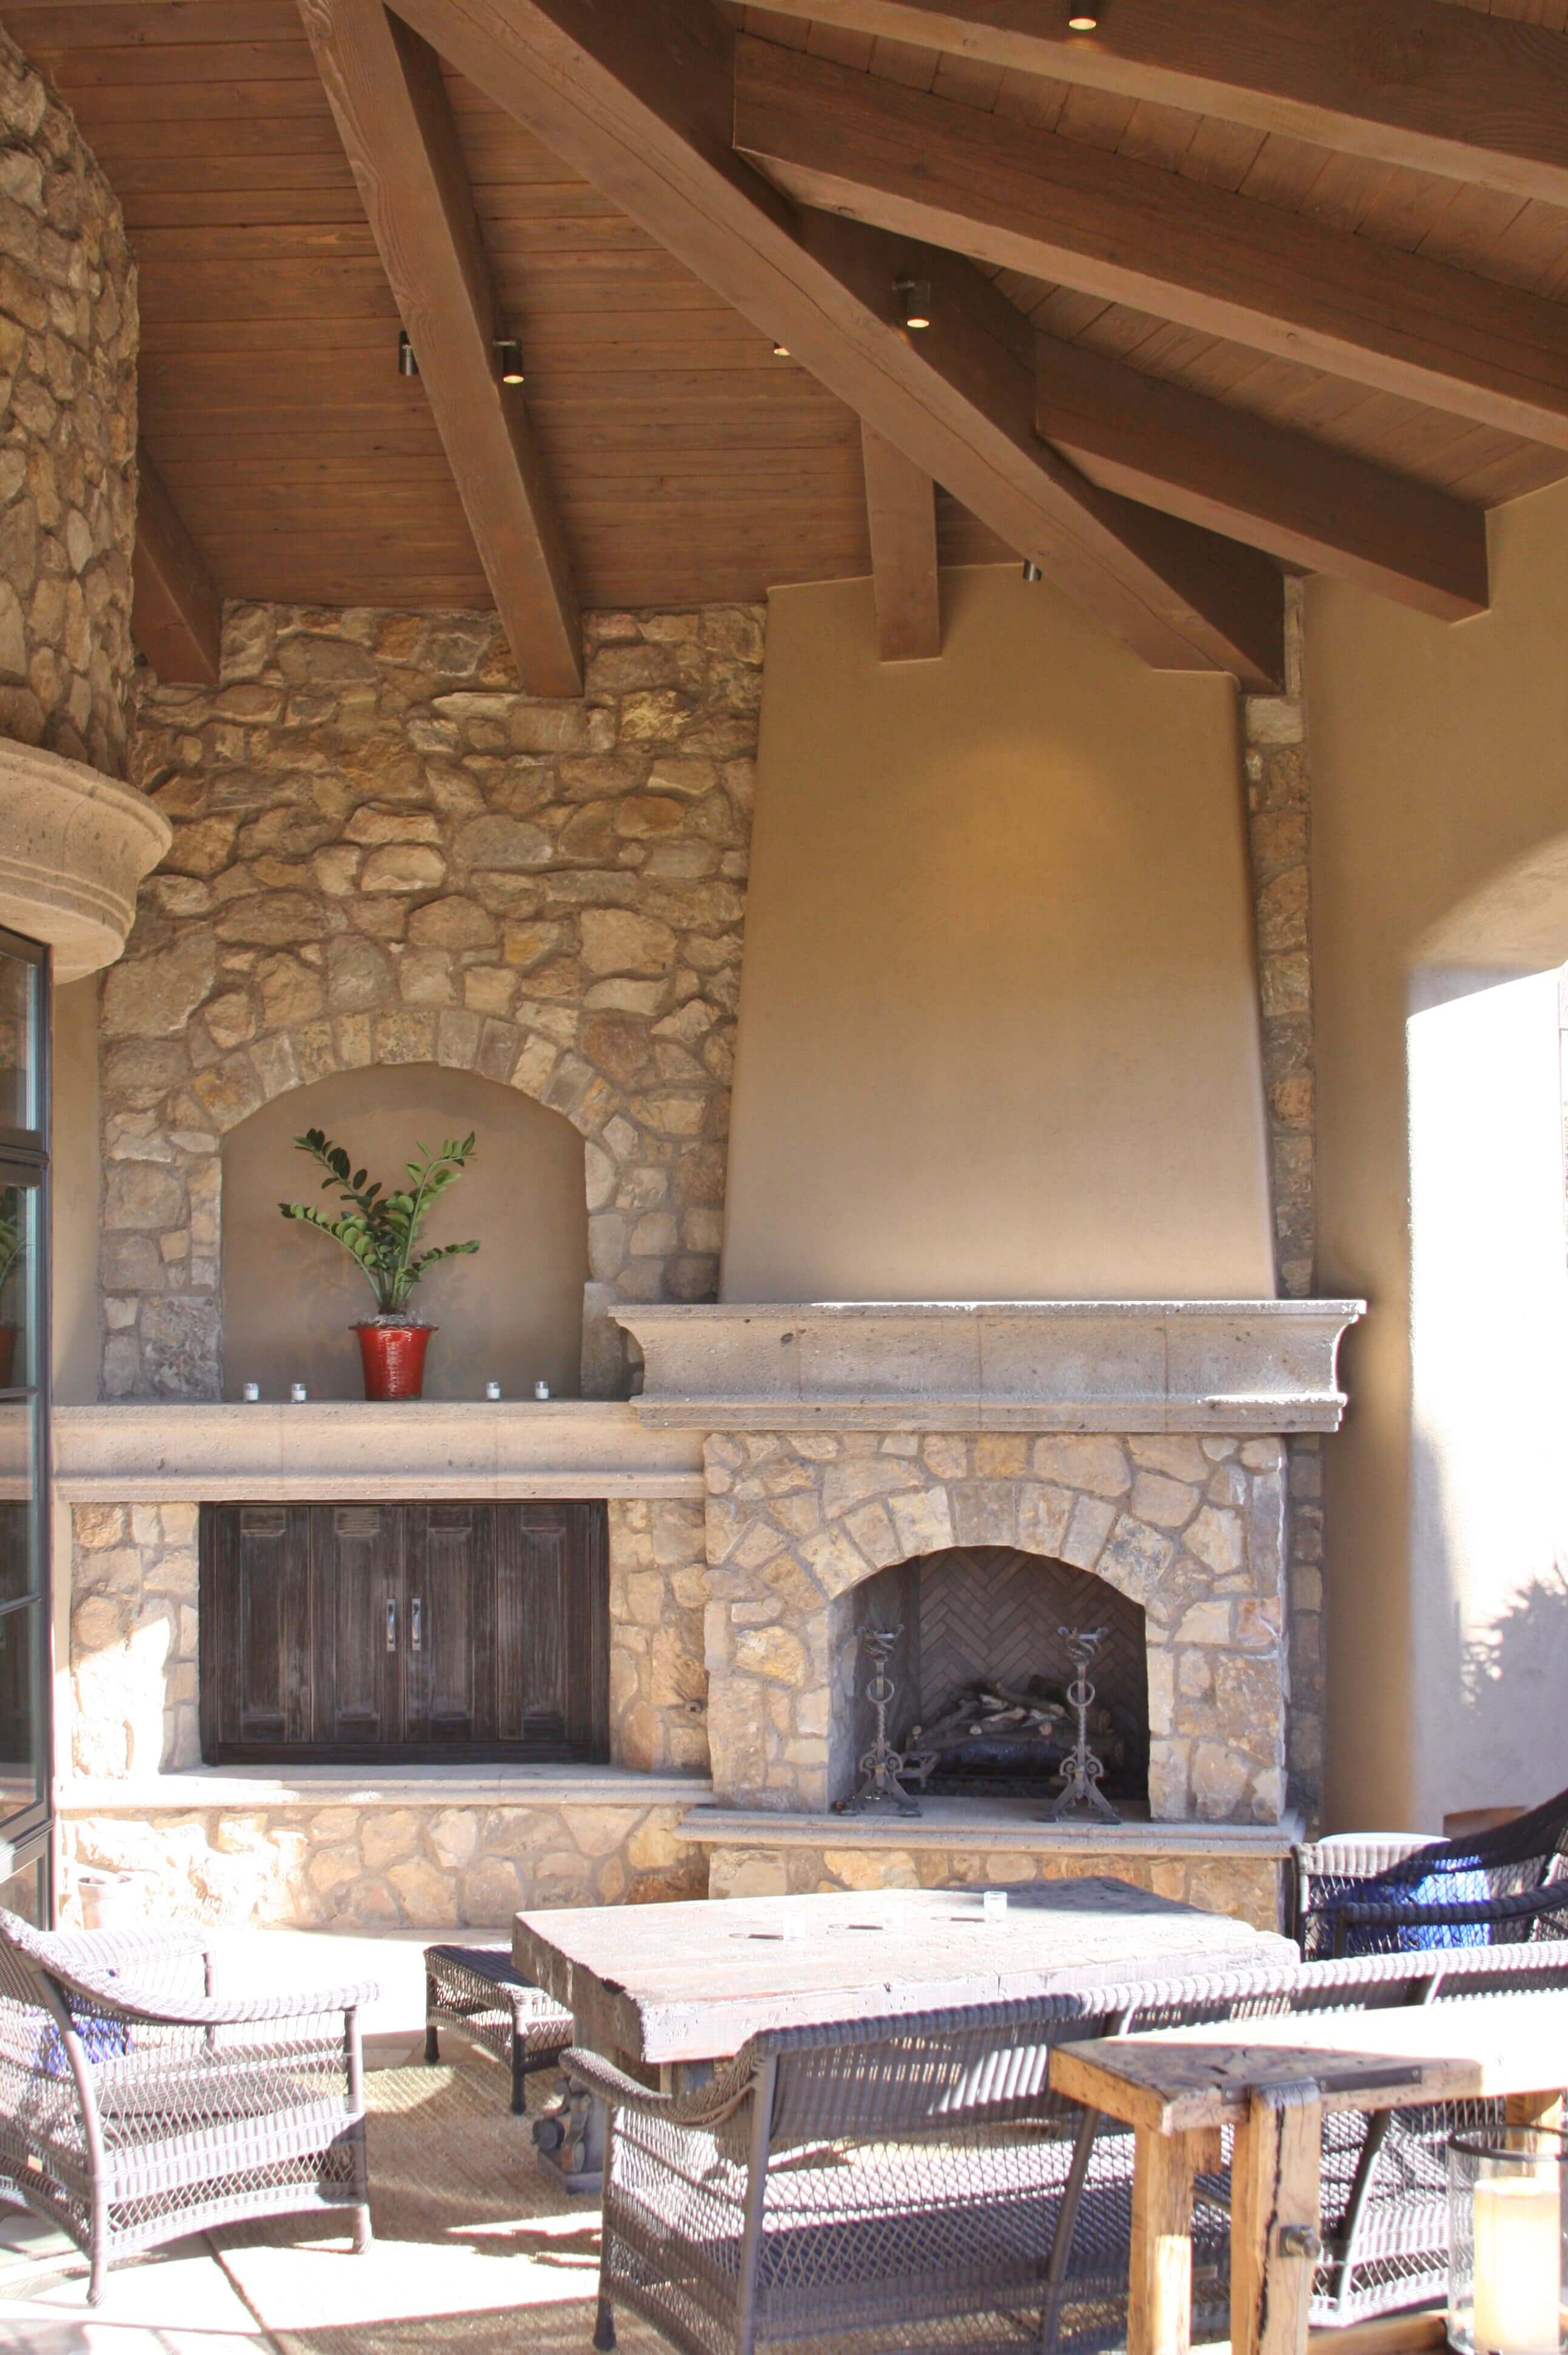 12-Fireplace-Mantel-and-other-Stone-Accents-at-Outdoor-Living-Room